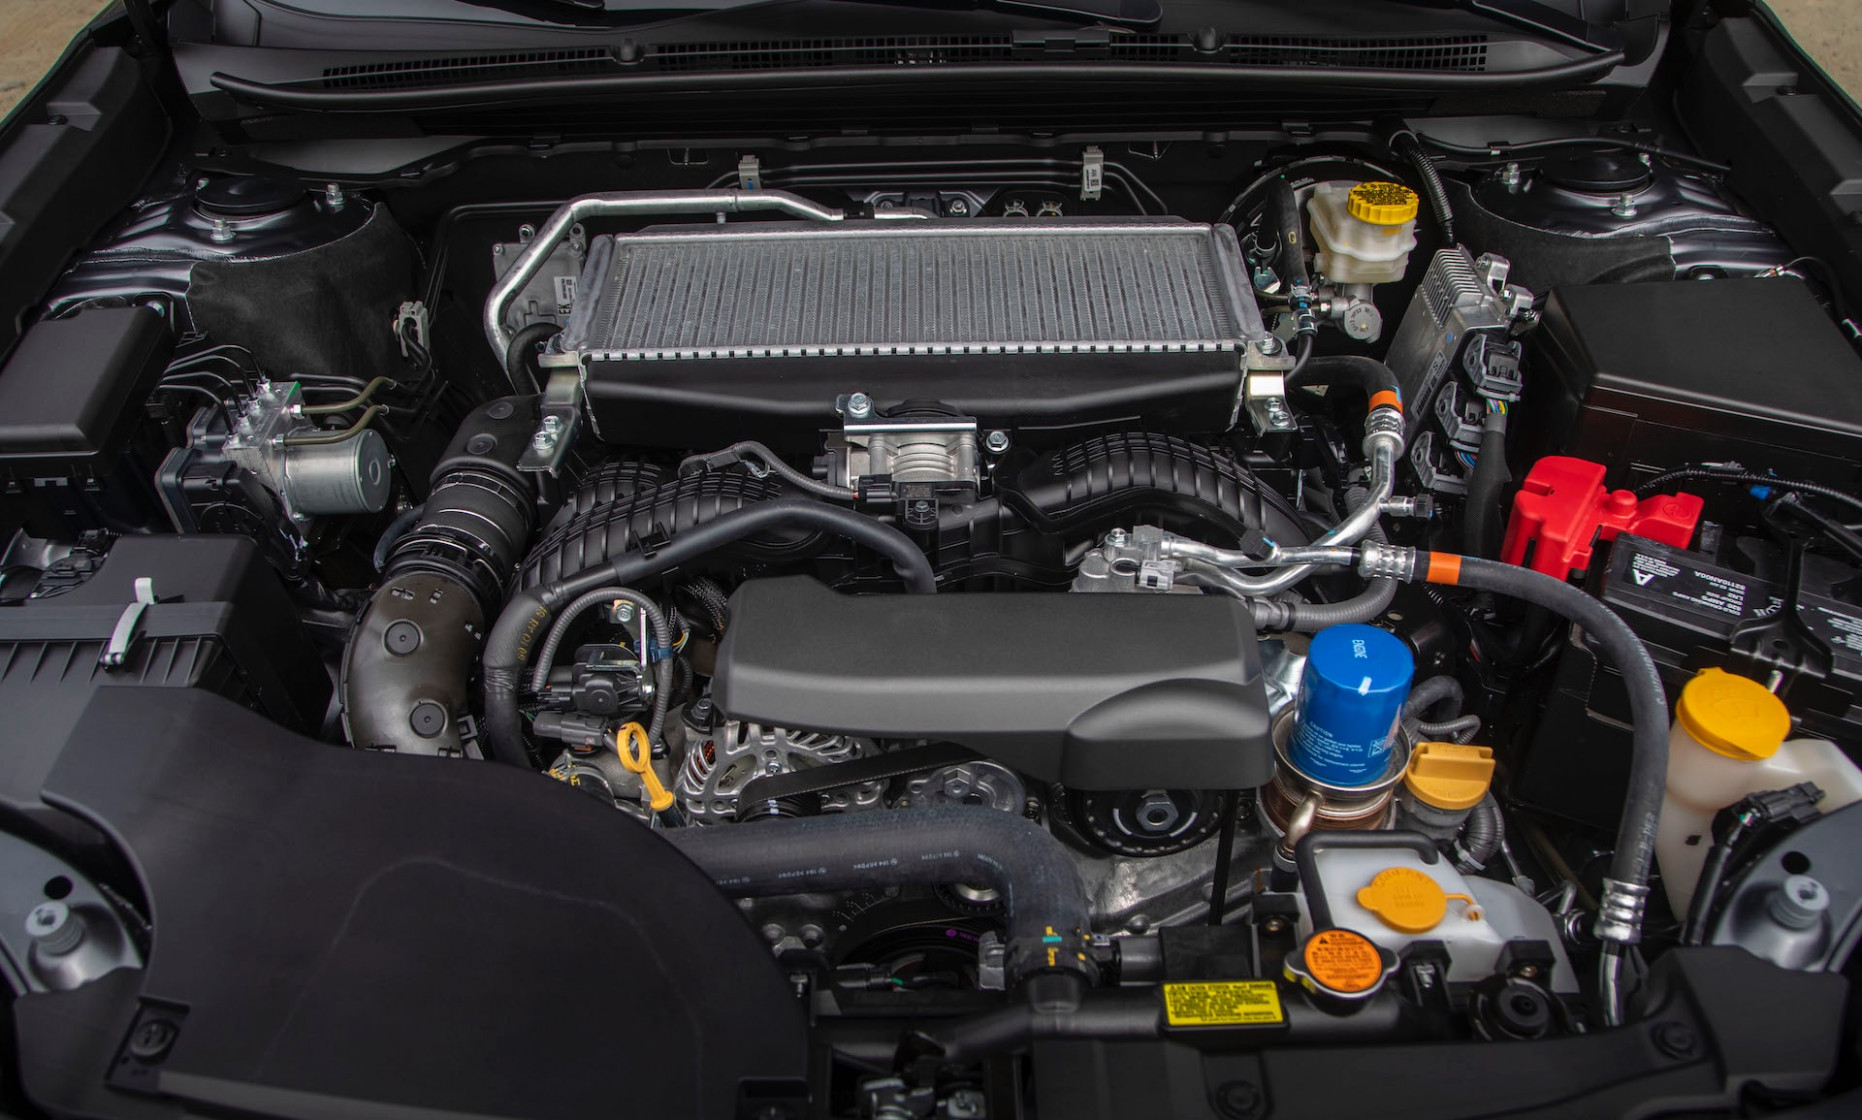 Next-gen Toyota 10 to debut mid-10 with turbo engine ..